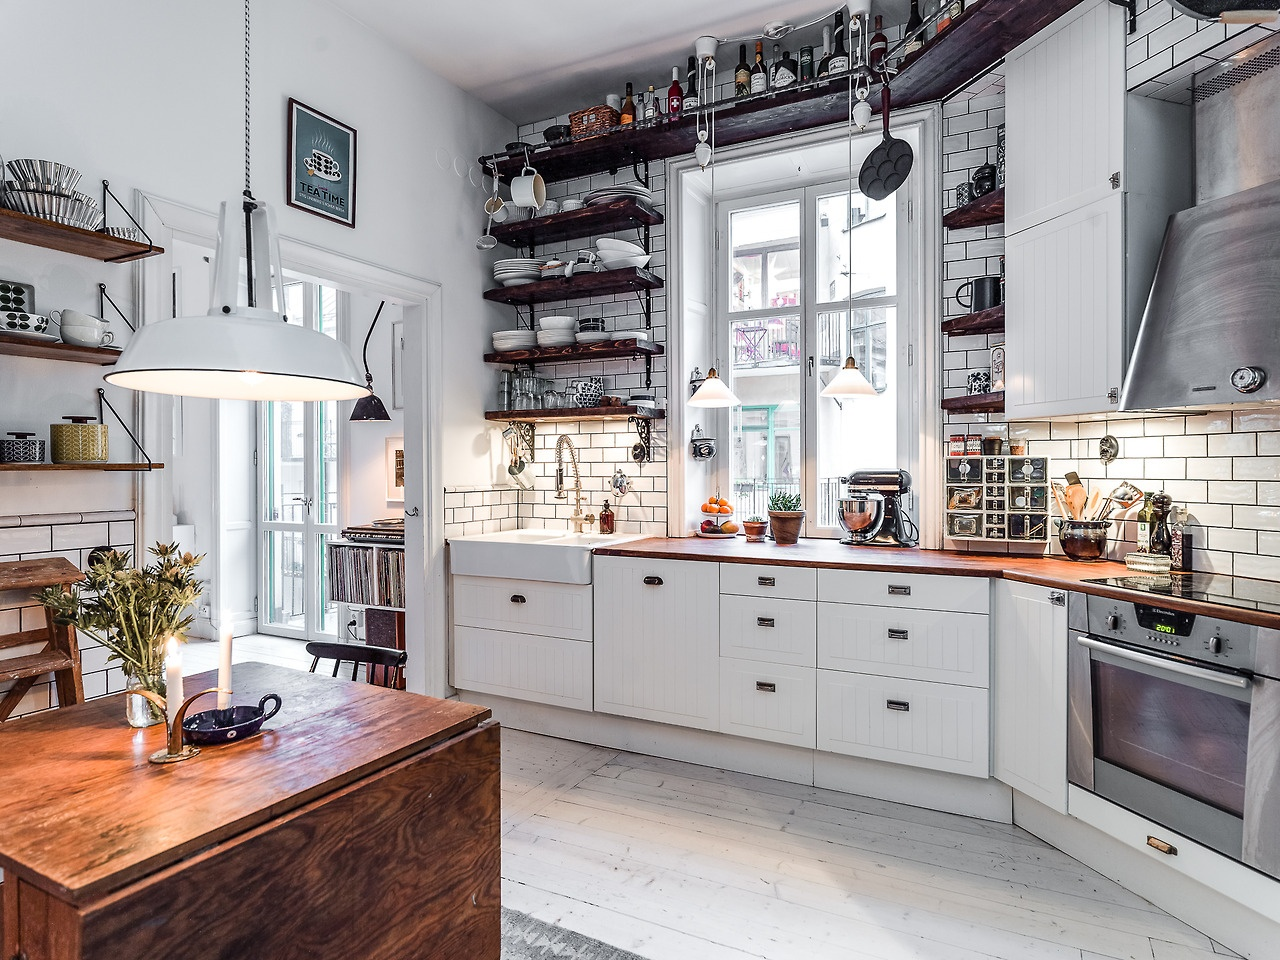 kitchen design tumblr collection 13 your no 1 source of architecture 787